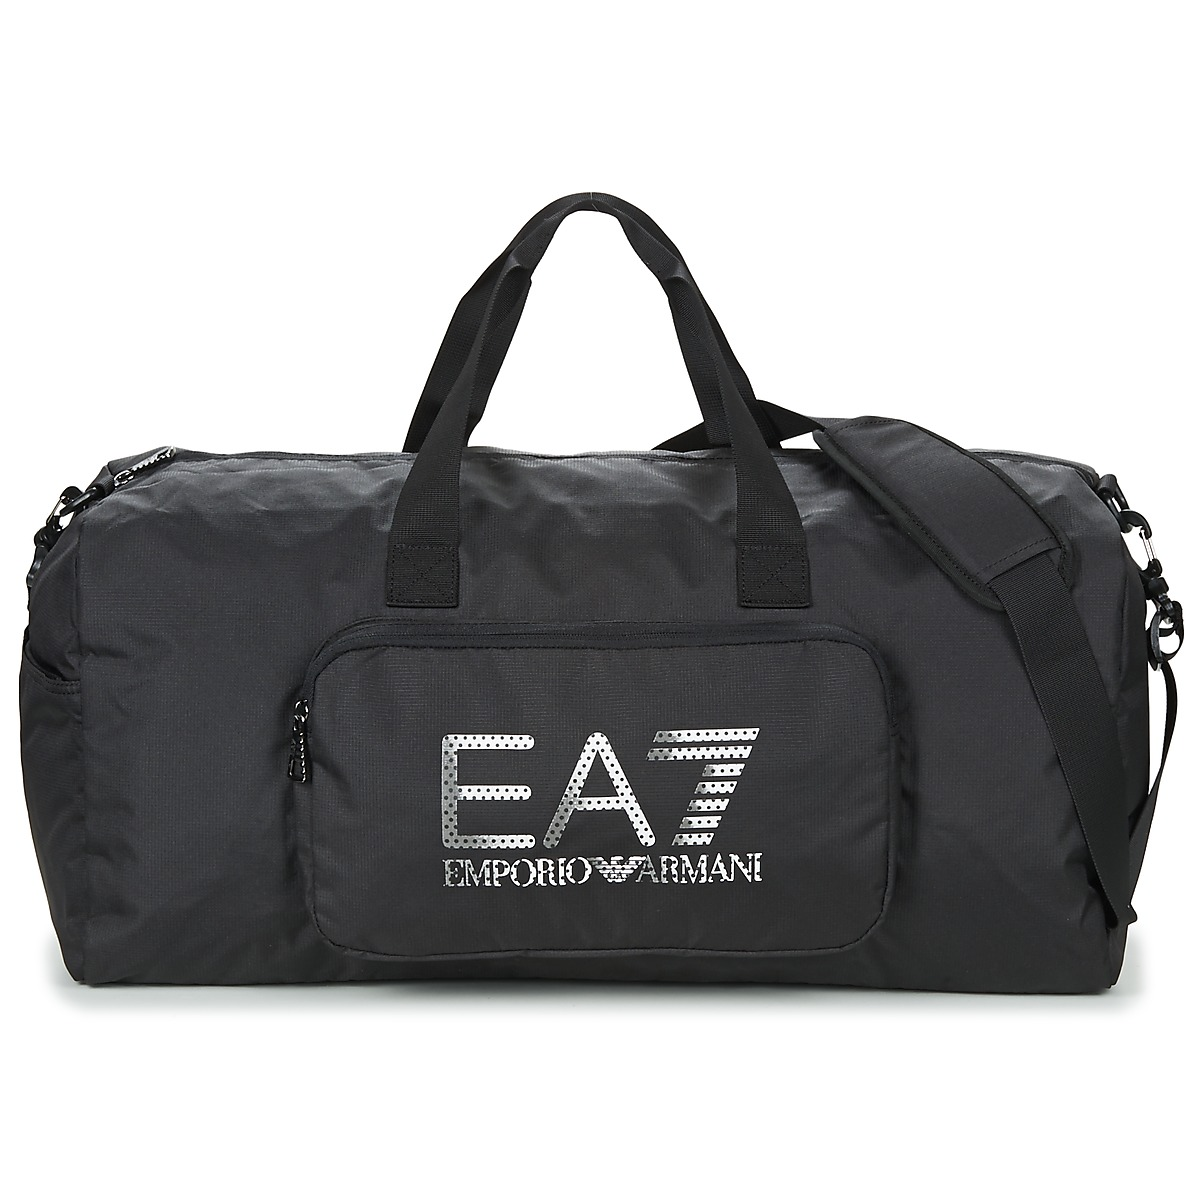 Borsa da sport donna Emporio Armani EA7  TRAIN PRIME U GYM BAG A  Nero